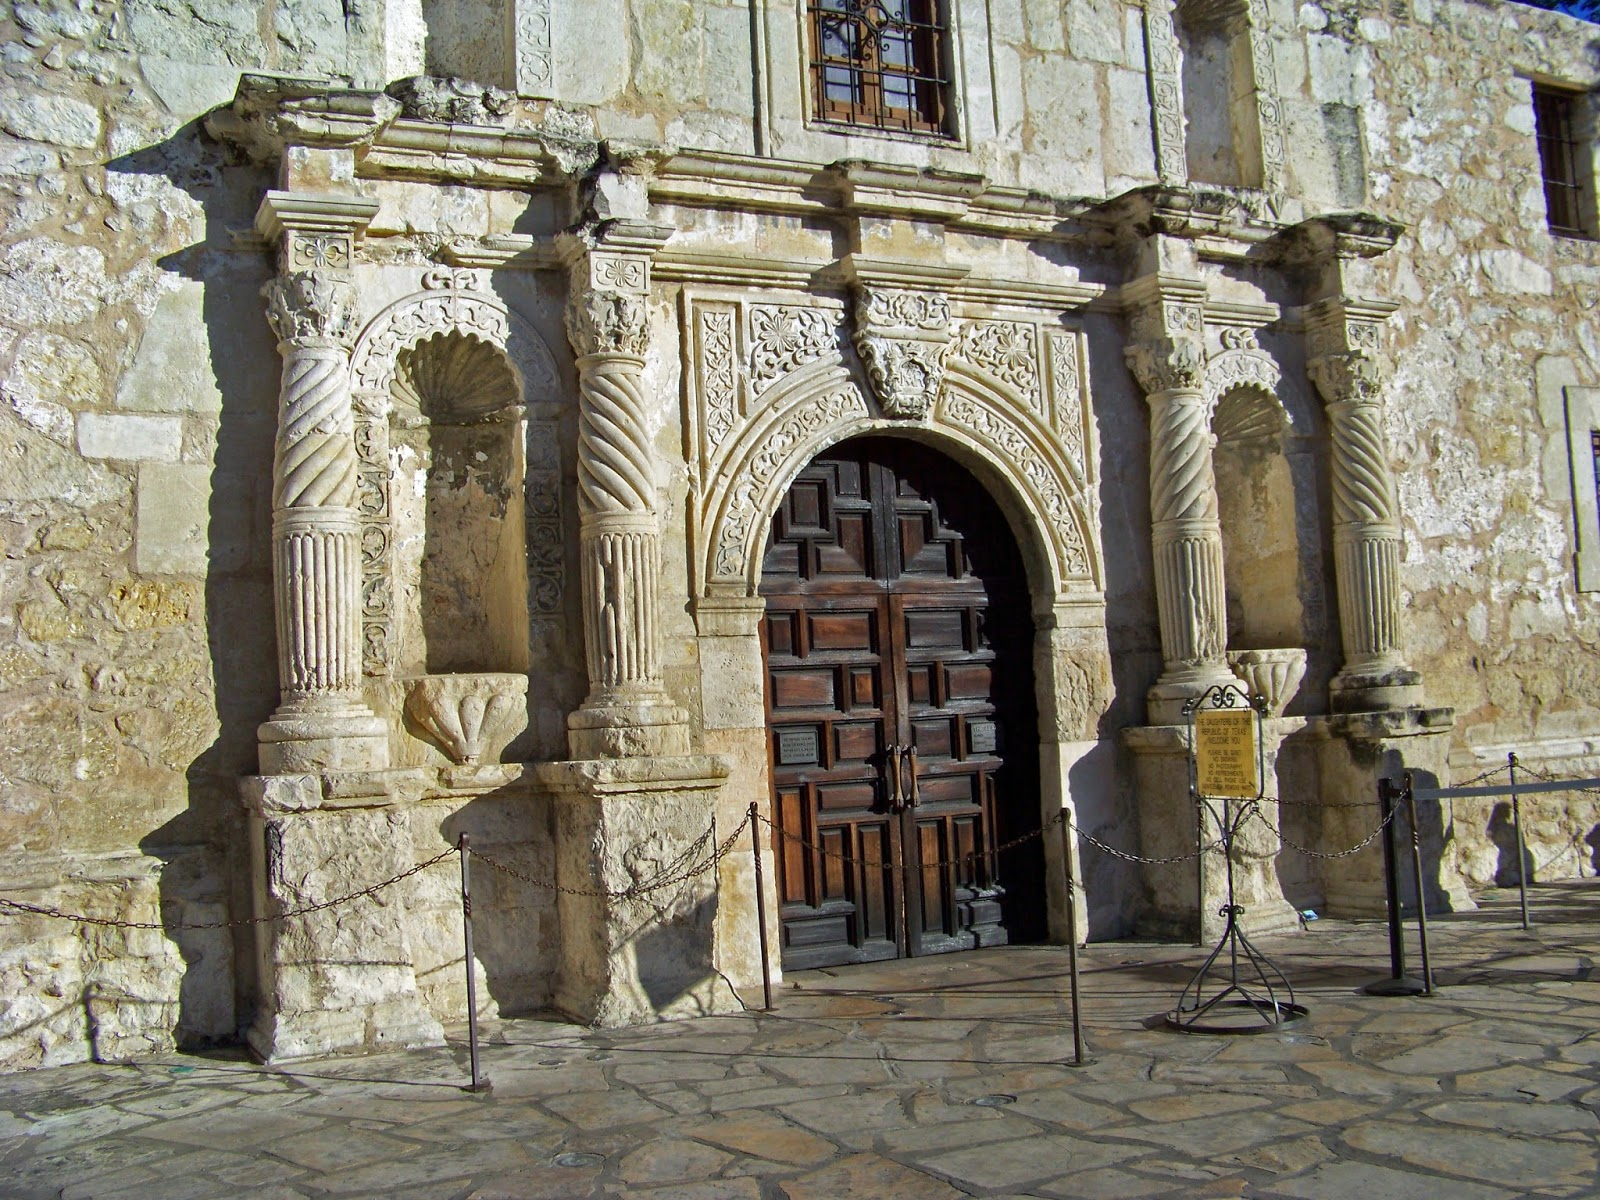 Doorway Into the Past: The Battle of the Alamo hasn't ended